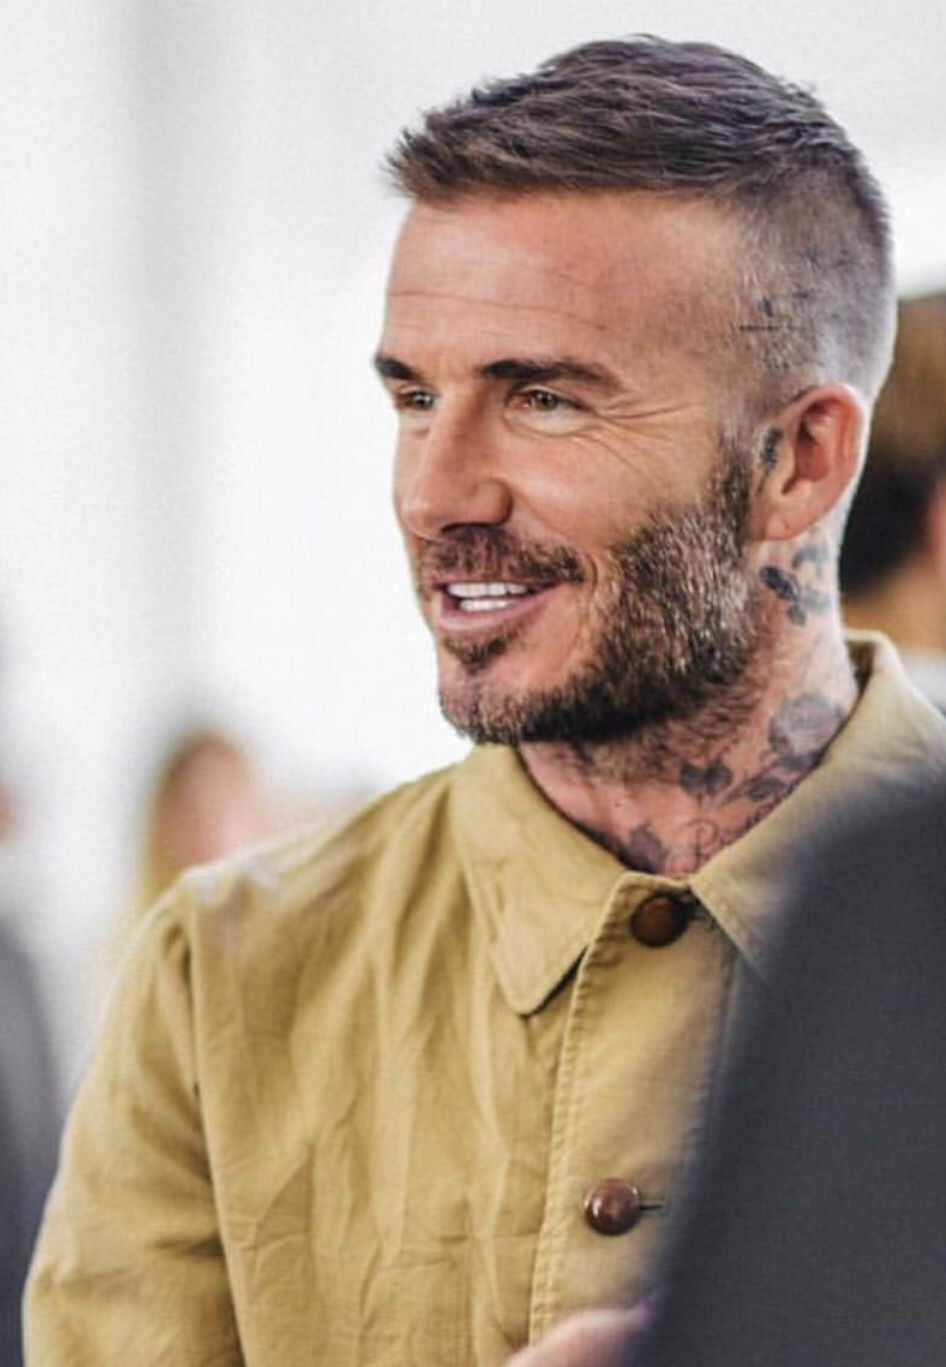 Pin By David Beckham On David Beckham Mens Hairstyles Short Beckham Hair David Beckham Hairstyle